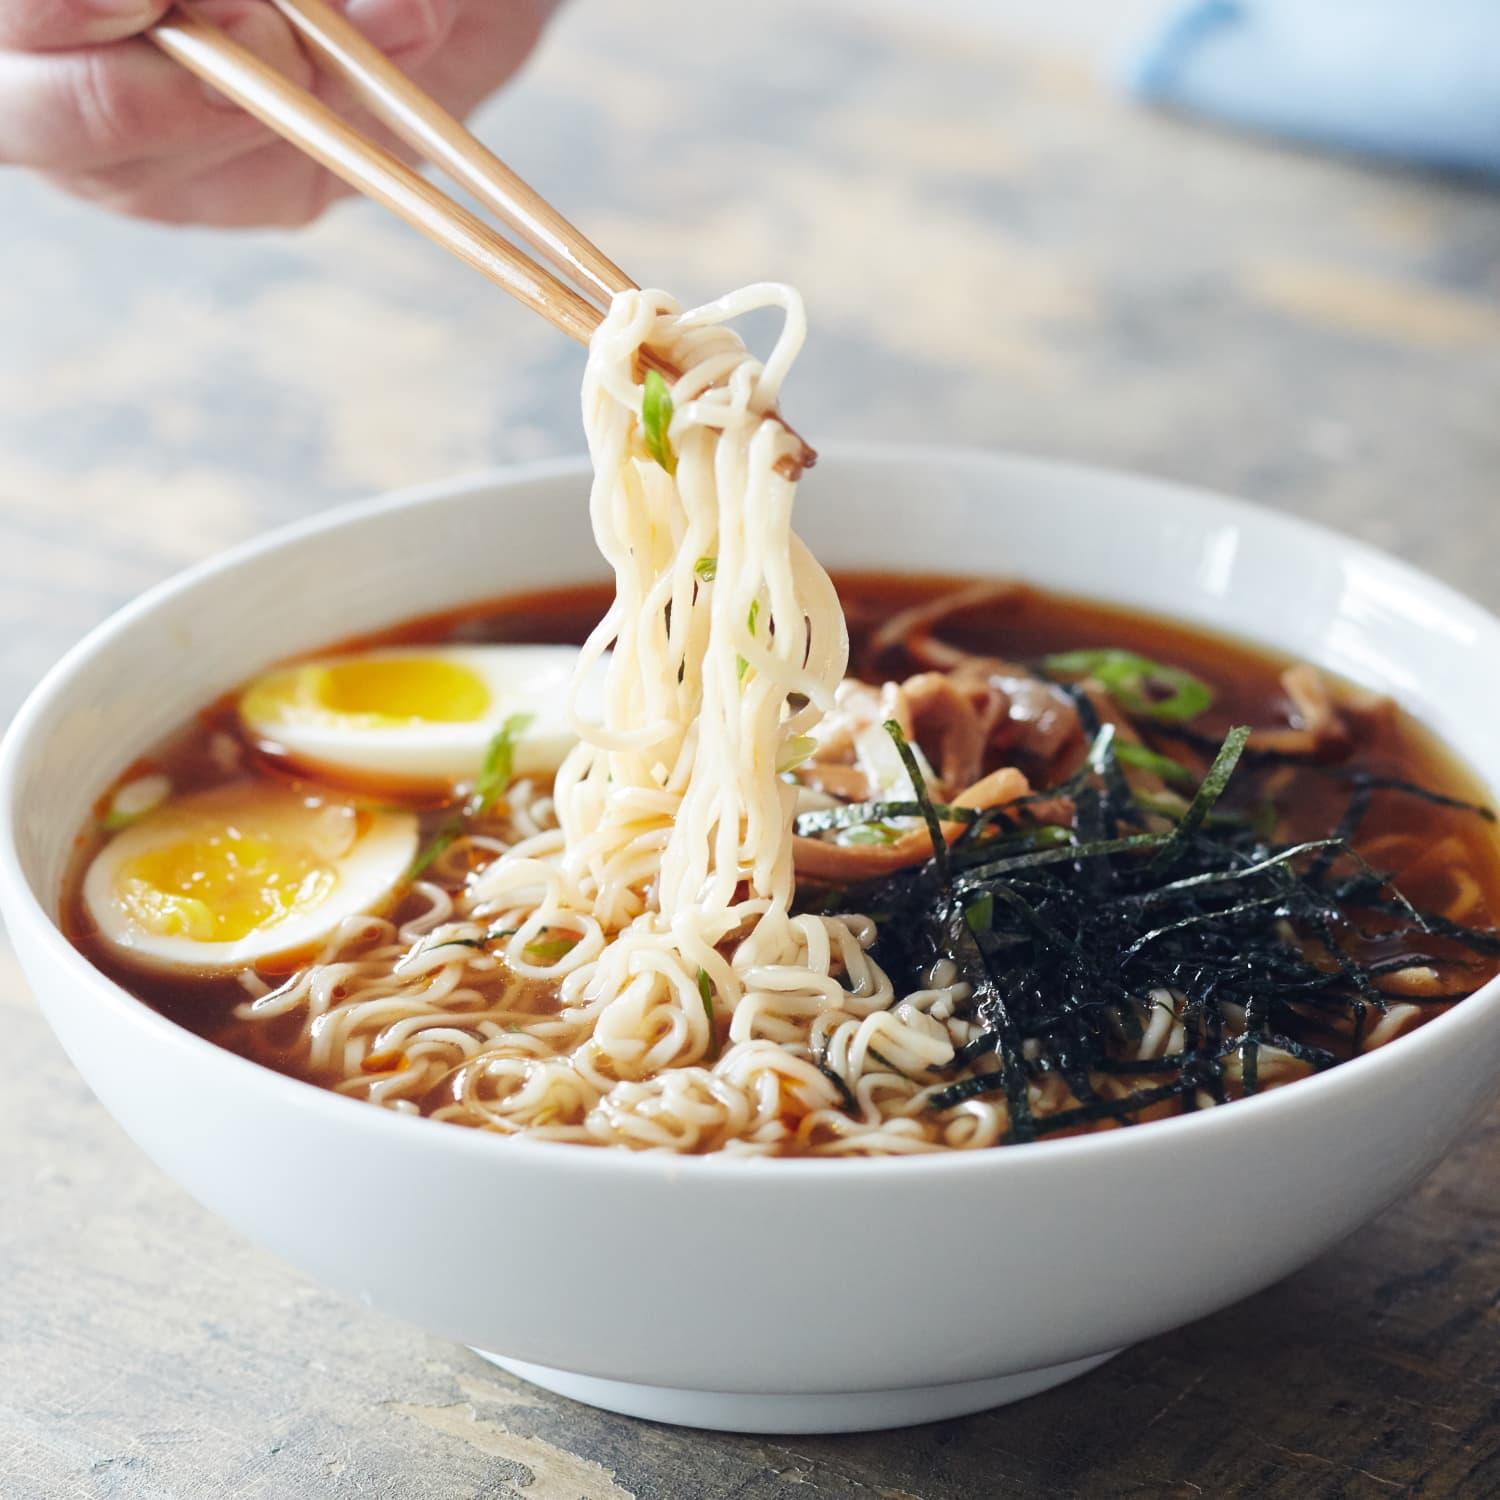 How To Make Really Good Restaurant-Style Ramen at Home